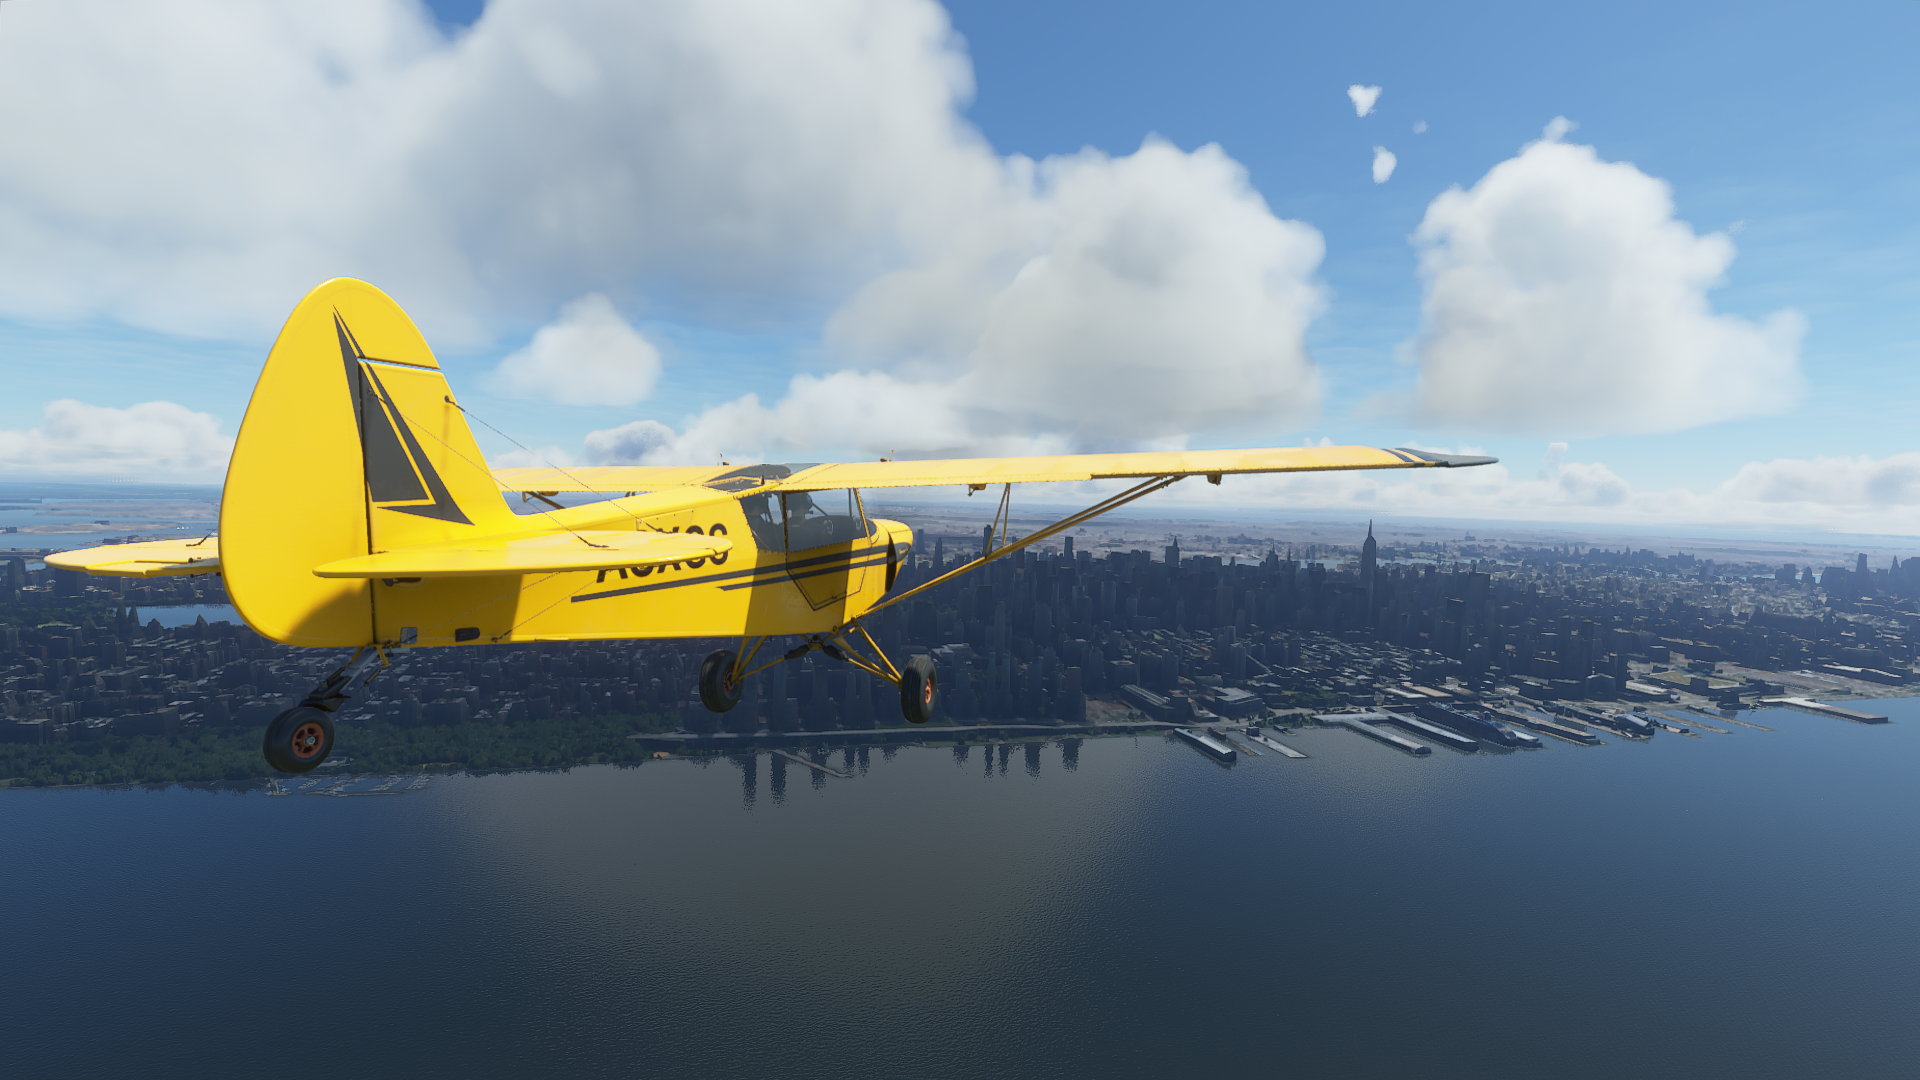 A yellow plane flies over the cloudy skies over New York City